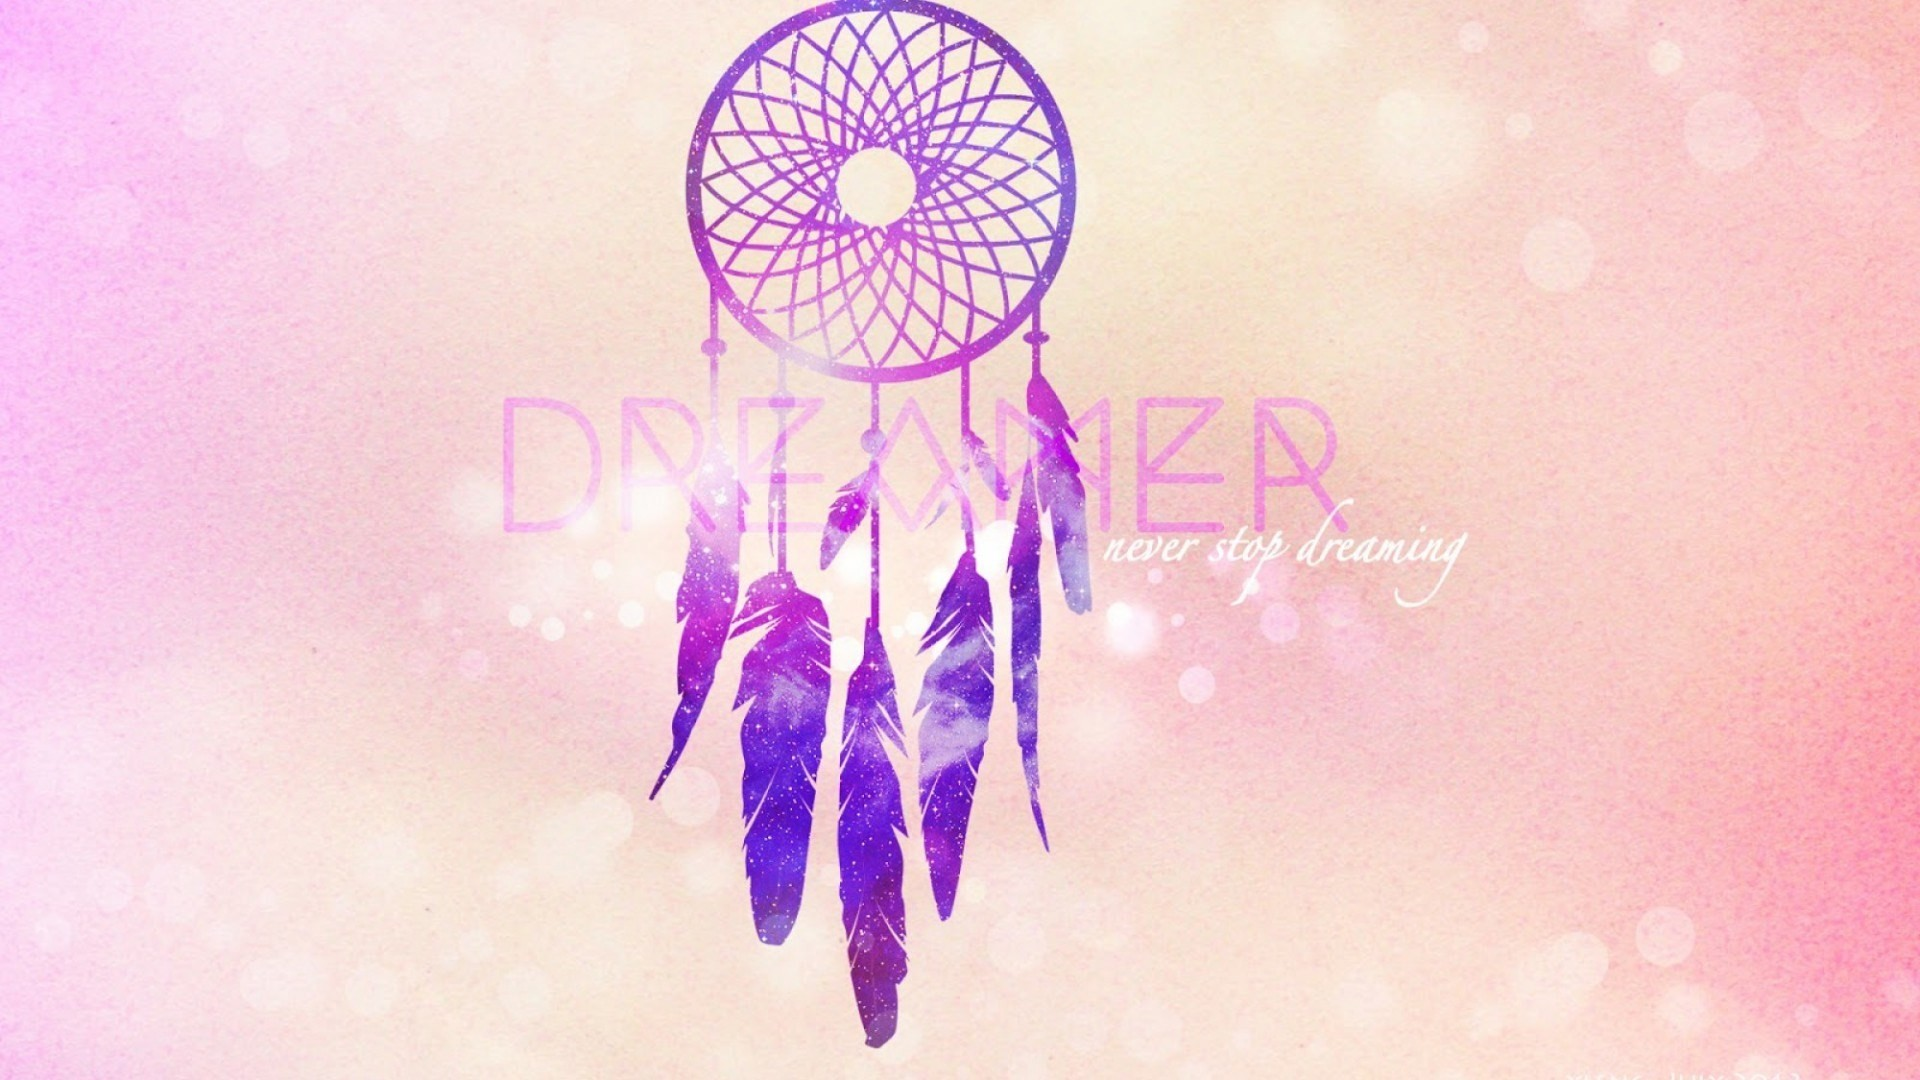 Dreamcatcher hd wallpaper download